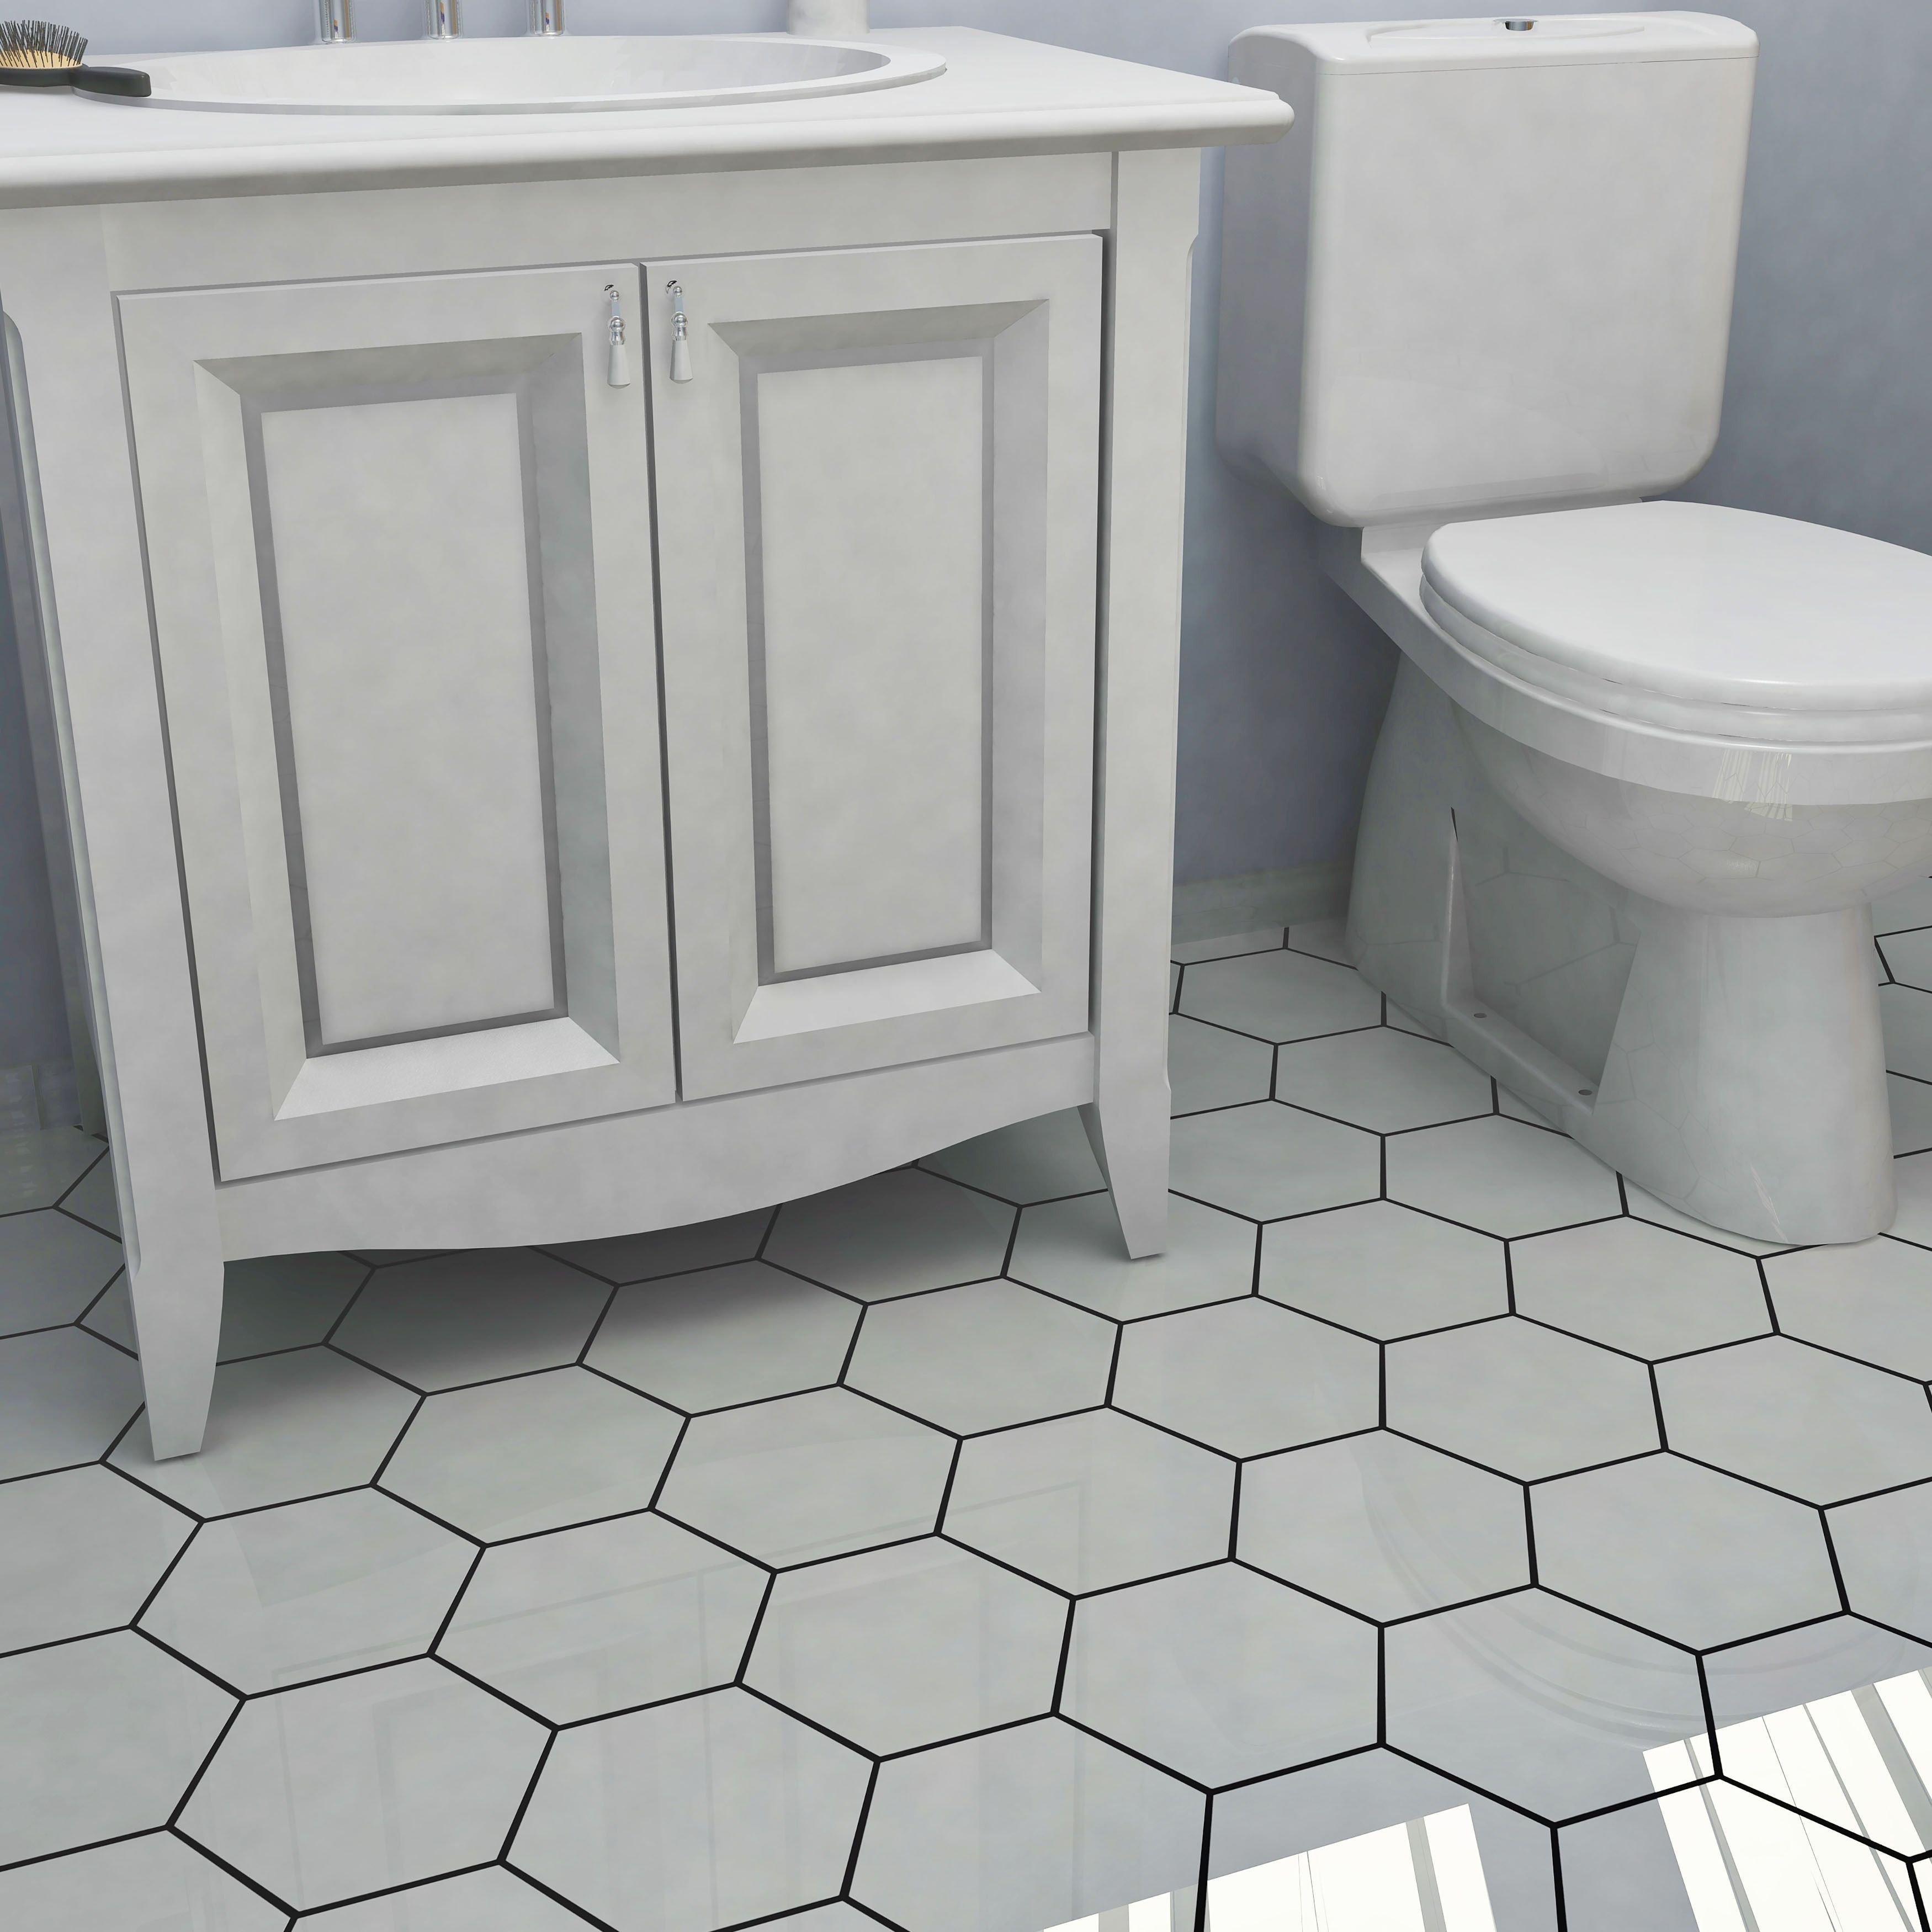 Somertile hextile matte white porcelain floor and wall tile set greywhiteporcelain floor tiles add the classic beauty and functionality of floor dailygadgetfo Gallery